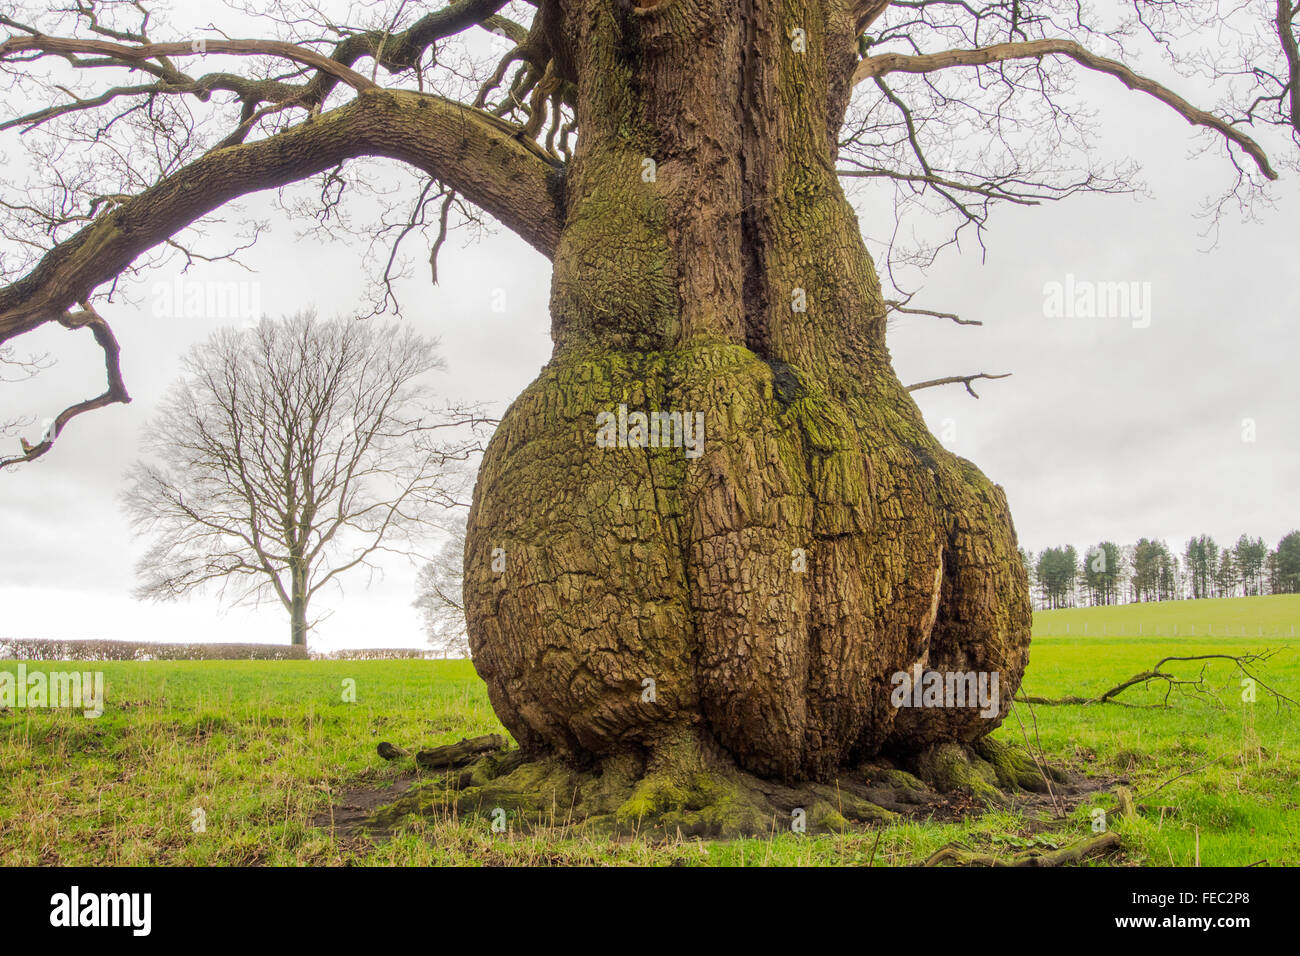 A tree with a bulbous trunk near the River Ribble at Hurst Green, Lancashire, UK. - Stock Image